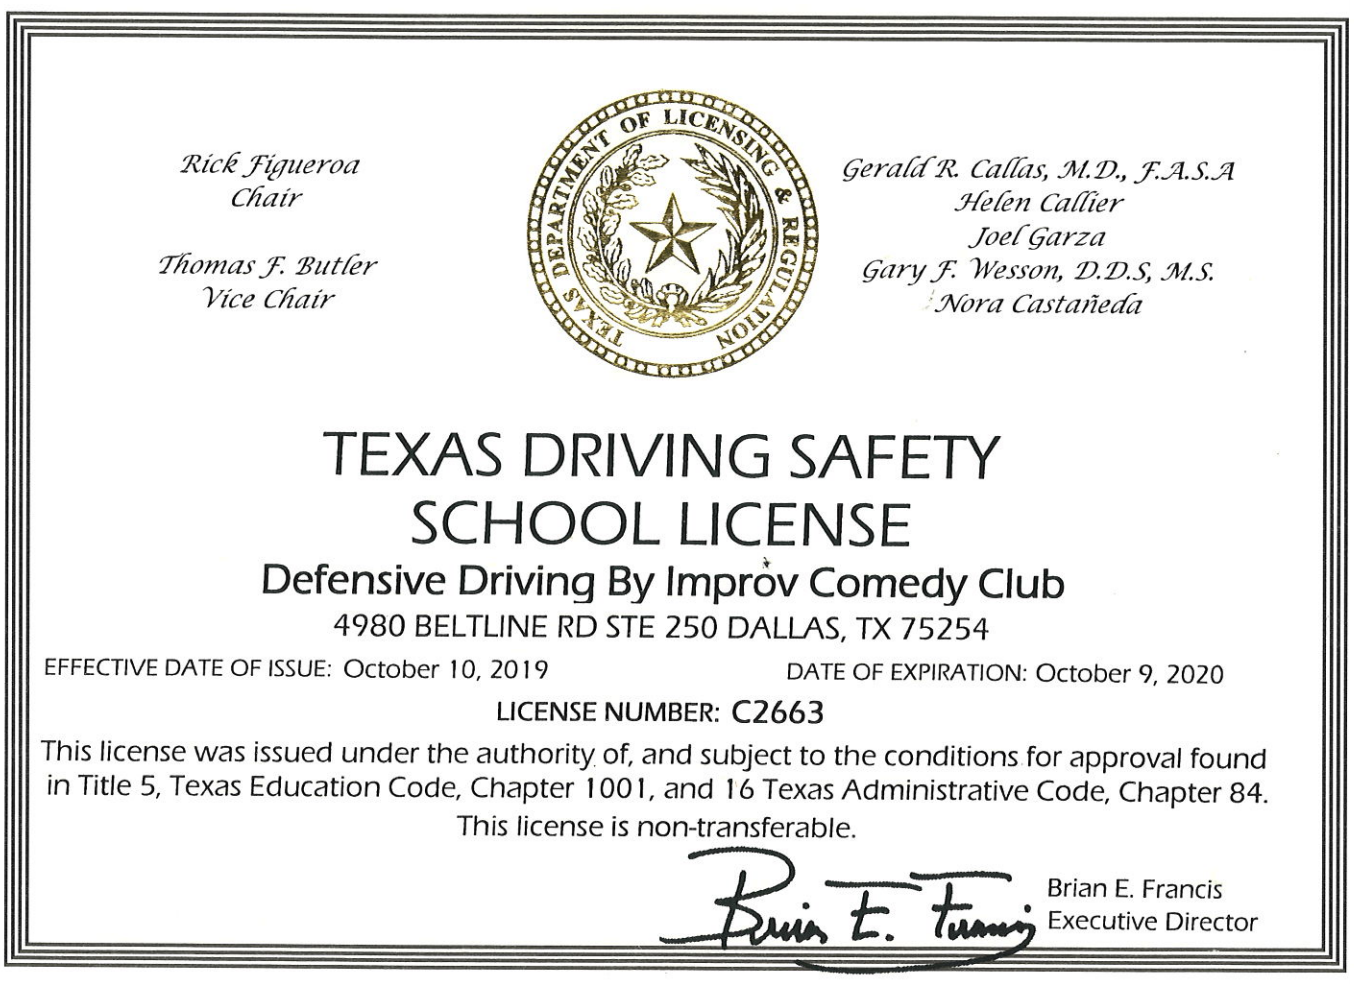 picture relating to Defensive Driving Course Online Texas Printable Certificate called Texas Defensive Behind by way of Improv